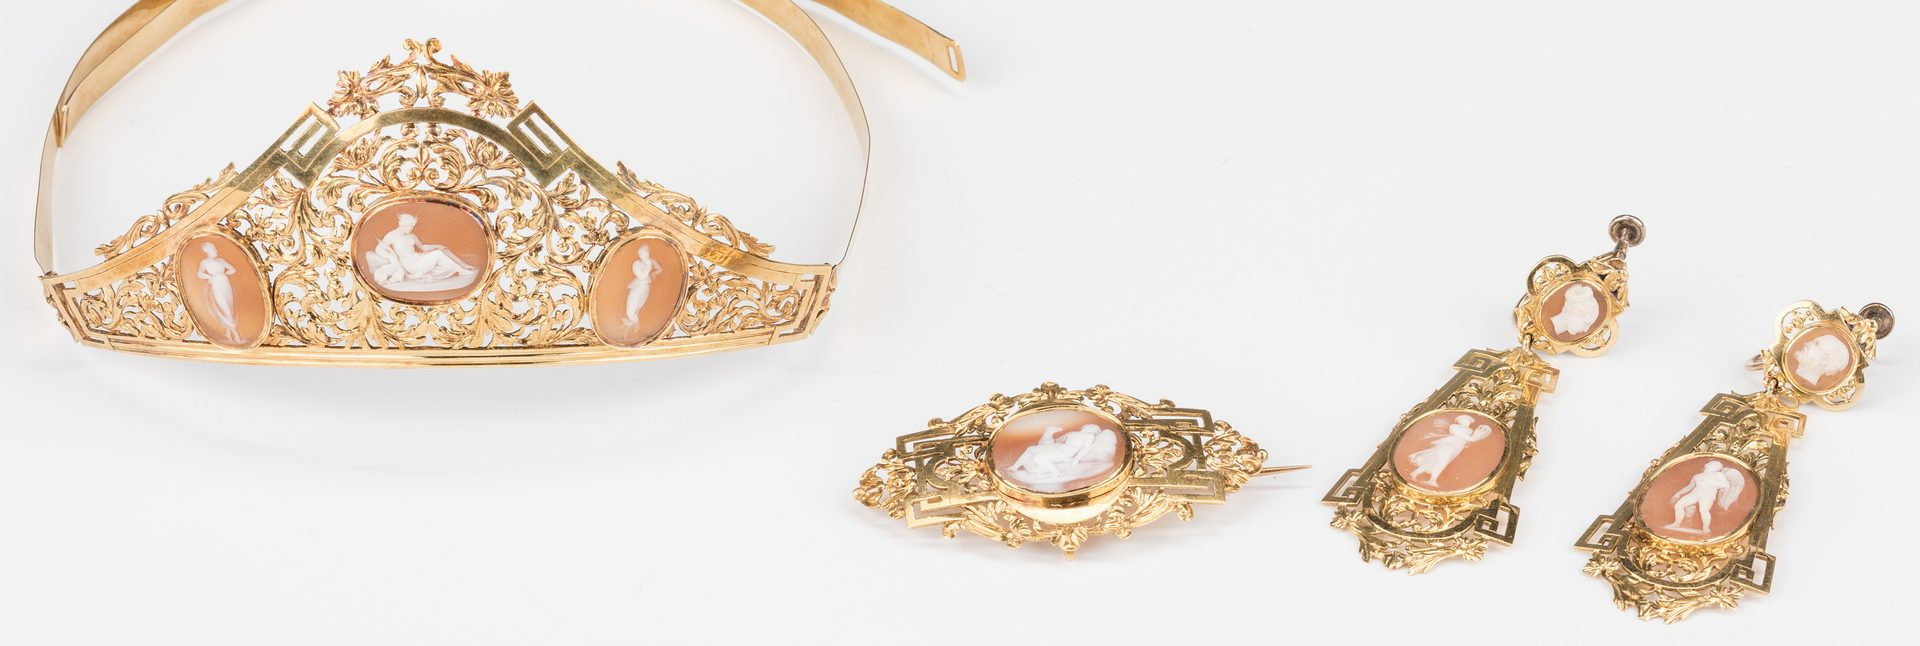 Lot 45: Gold and Shell Cameo Parure Circa 1810